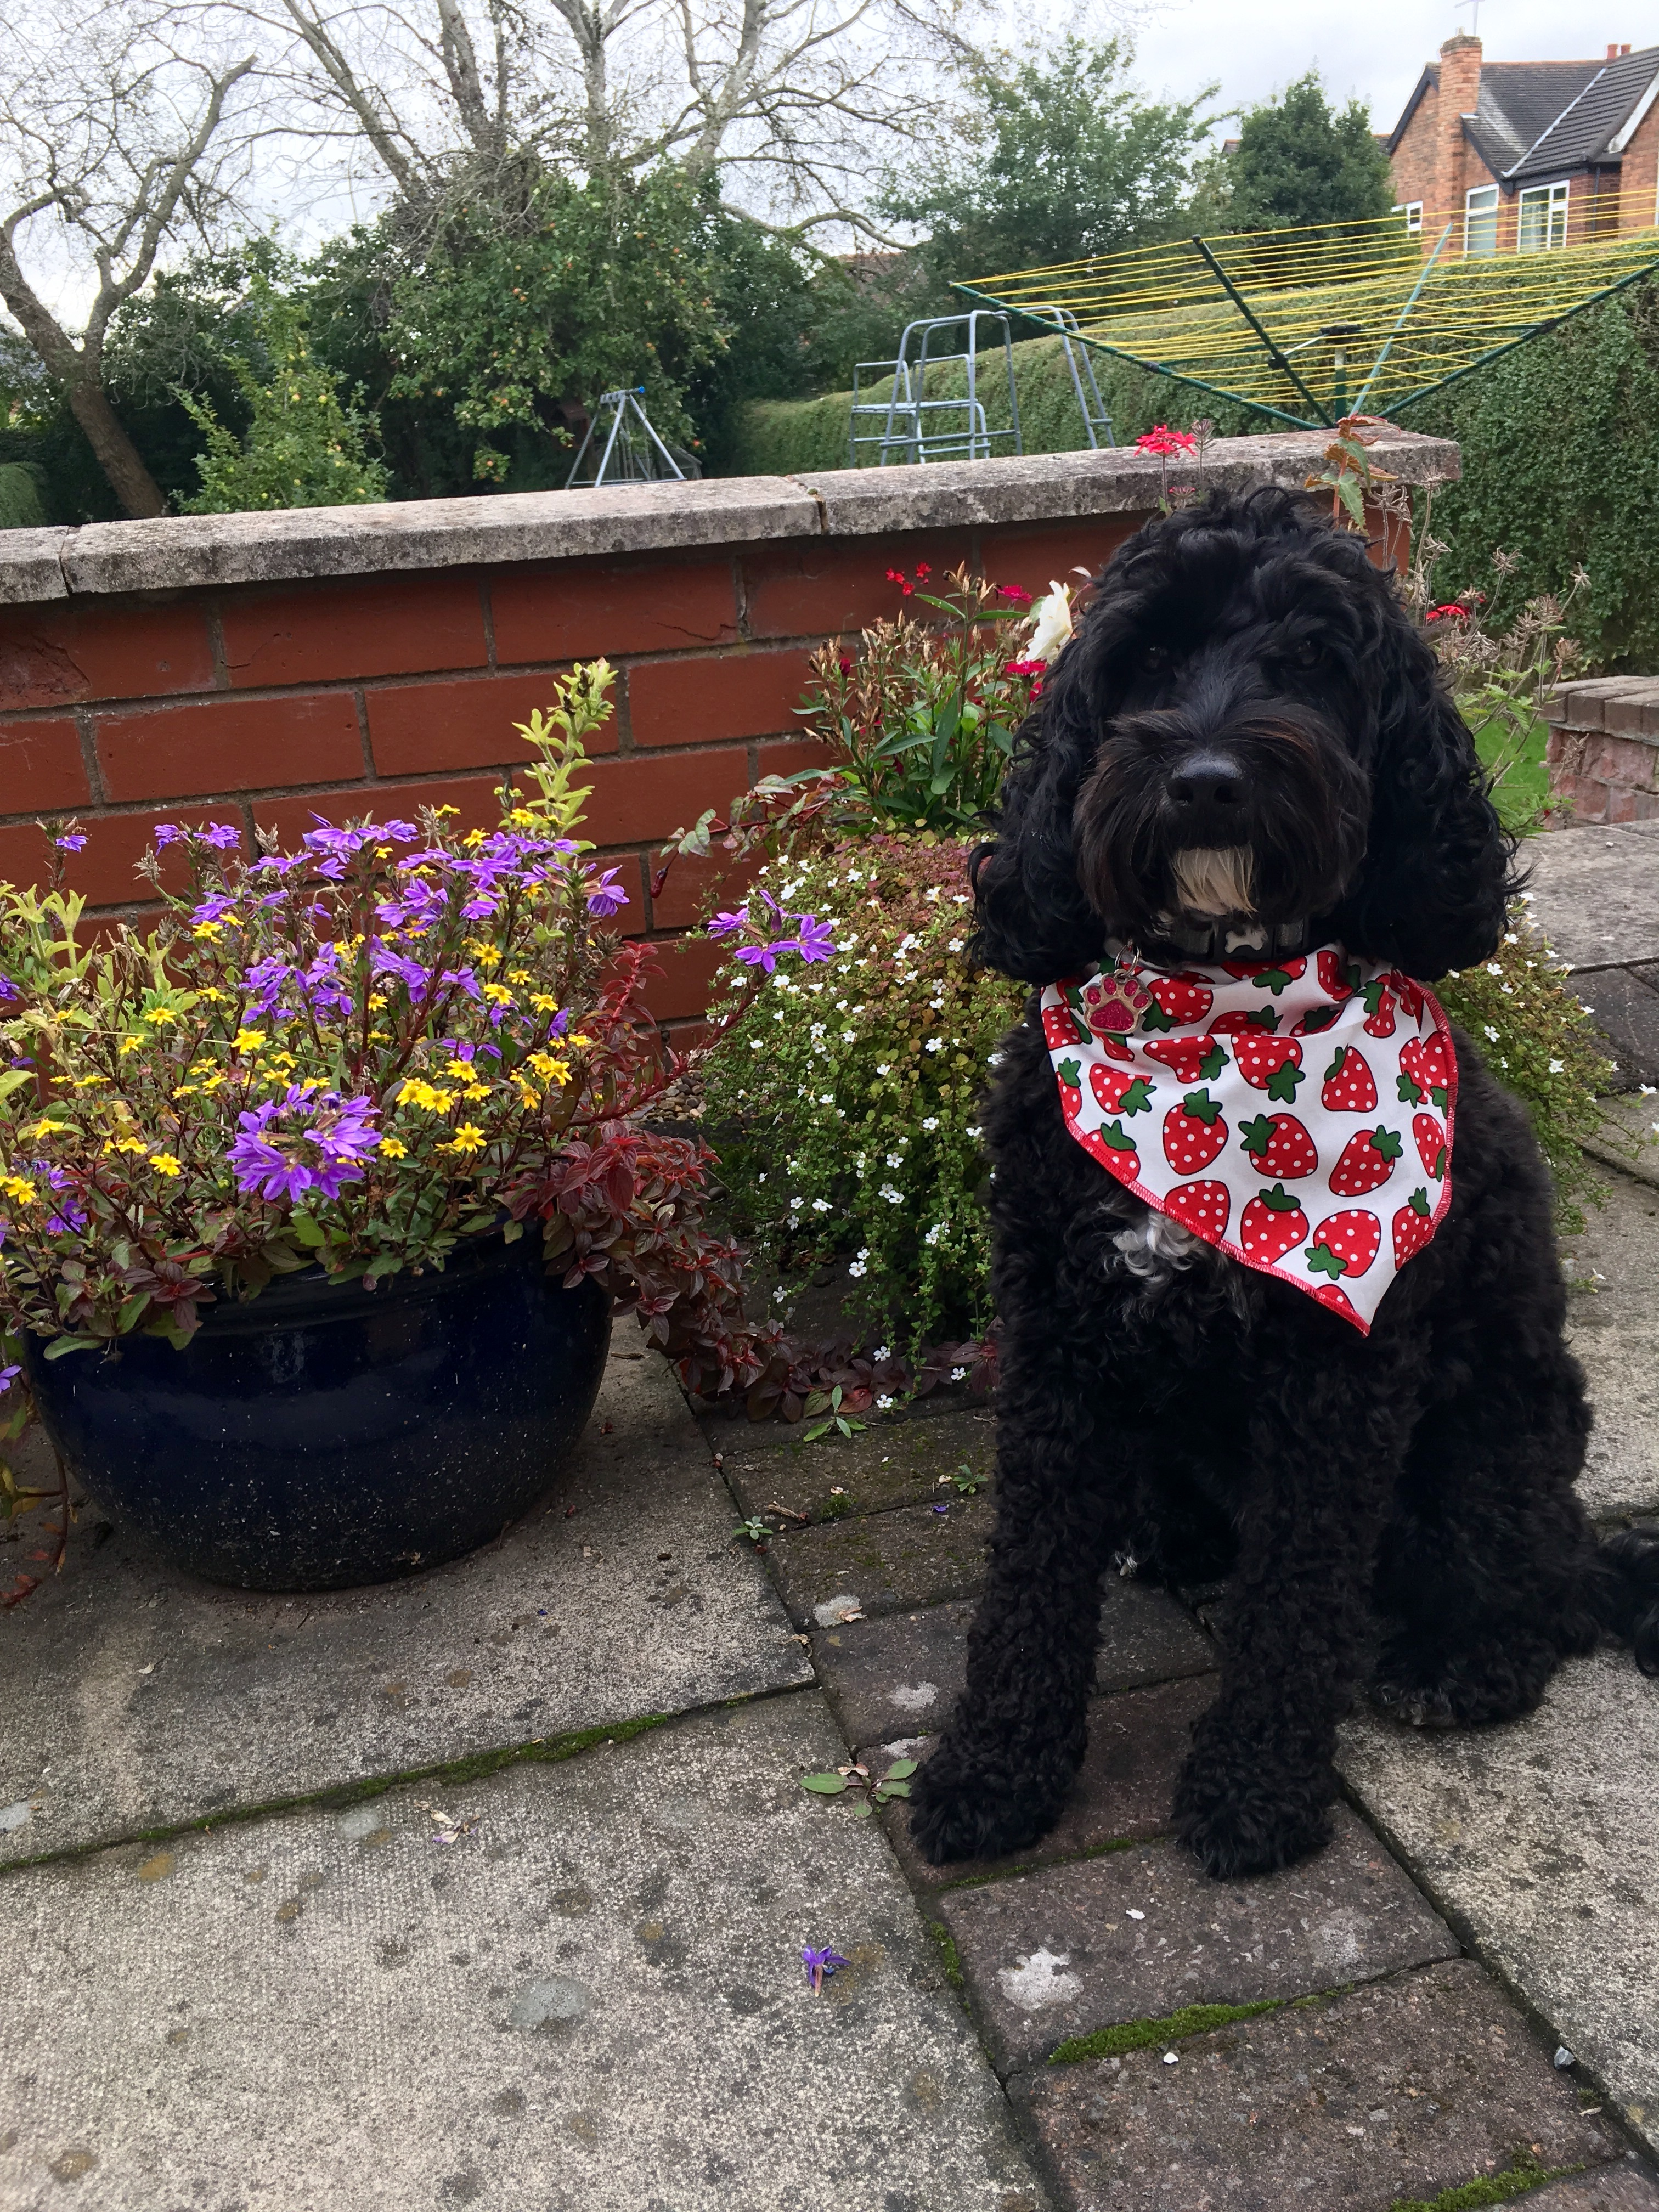 Strawberry Dog Bandana from Puppy Bandana